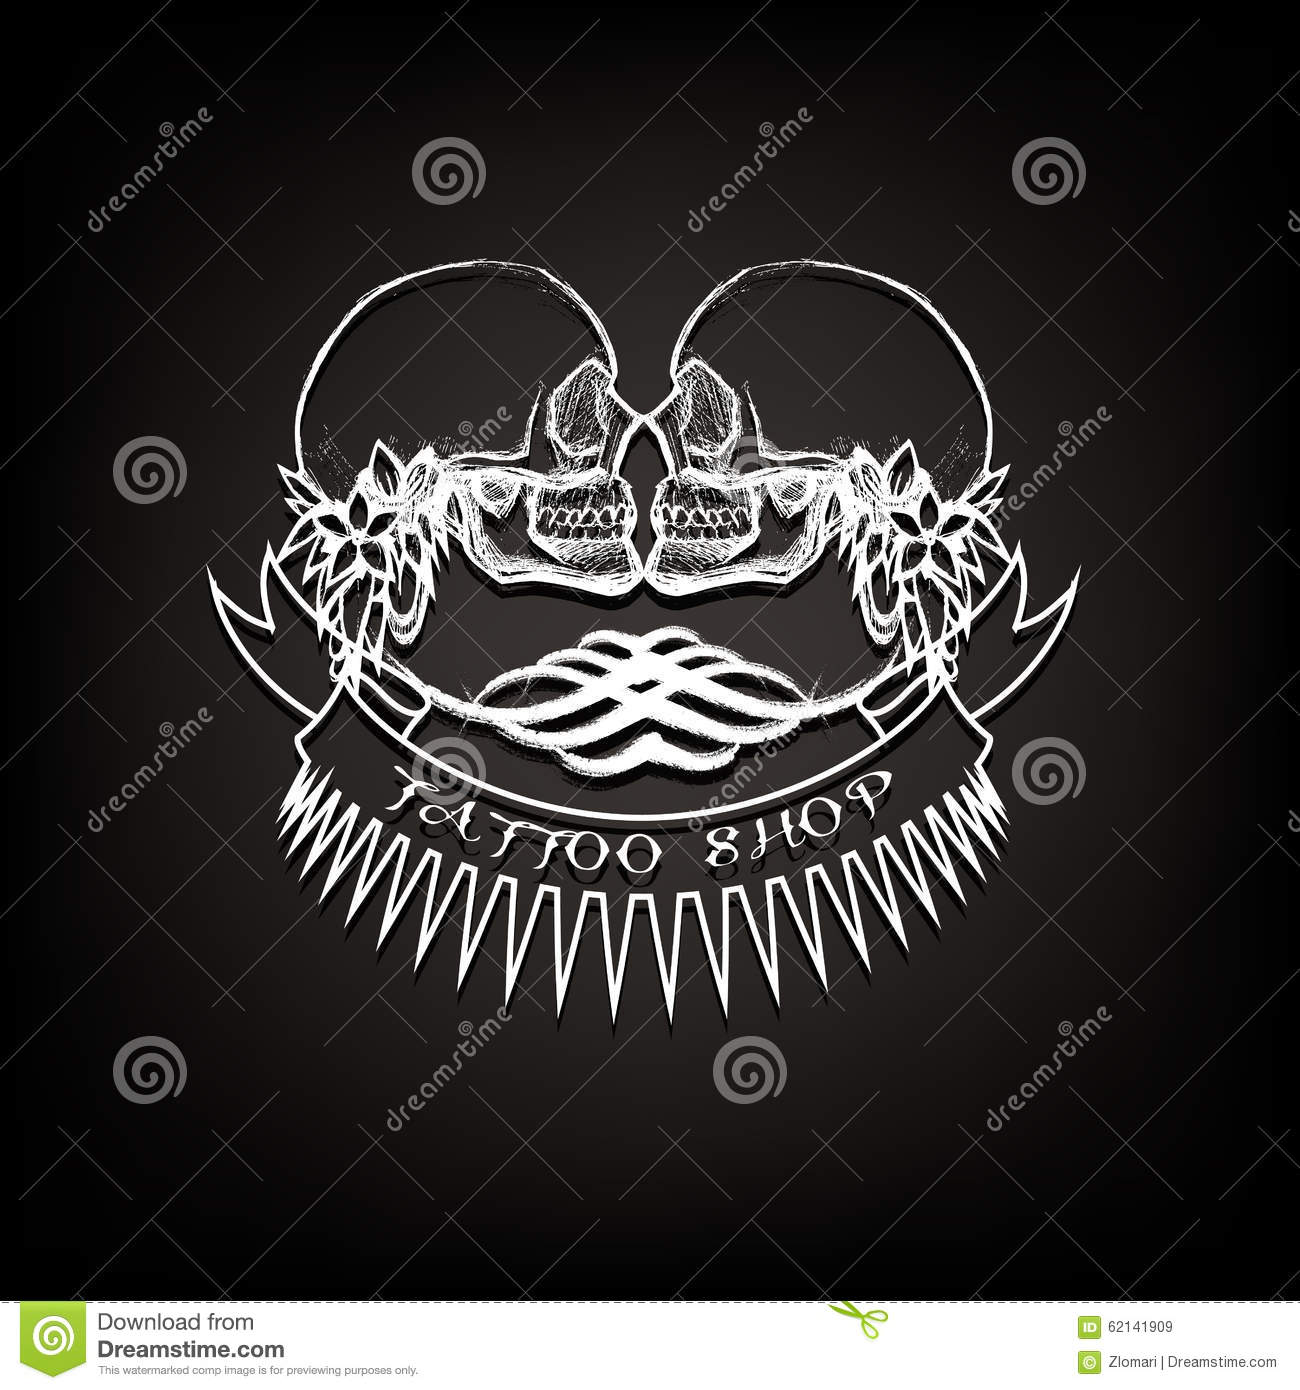 Tattoo Shop Logo, Emblem. Two Skulls With Ribbons Stock Vector - Image ...